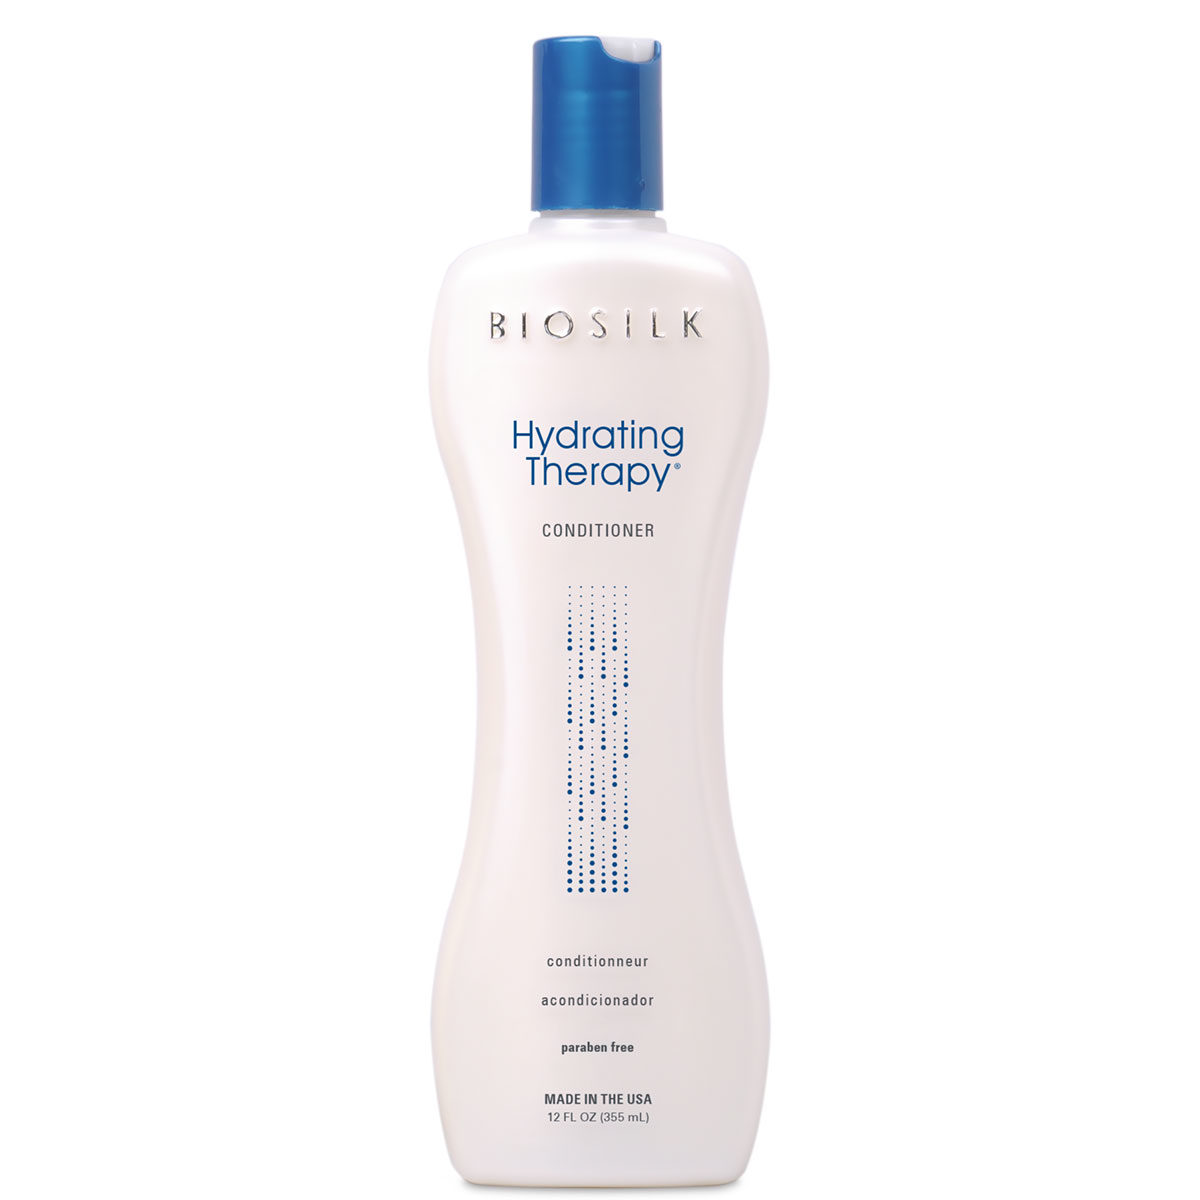 BioSilk Hydrating Therapy Conditioner 12 fl.oz. - BioSilk Haircare - BioSilk Hydrating Therapy